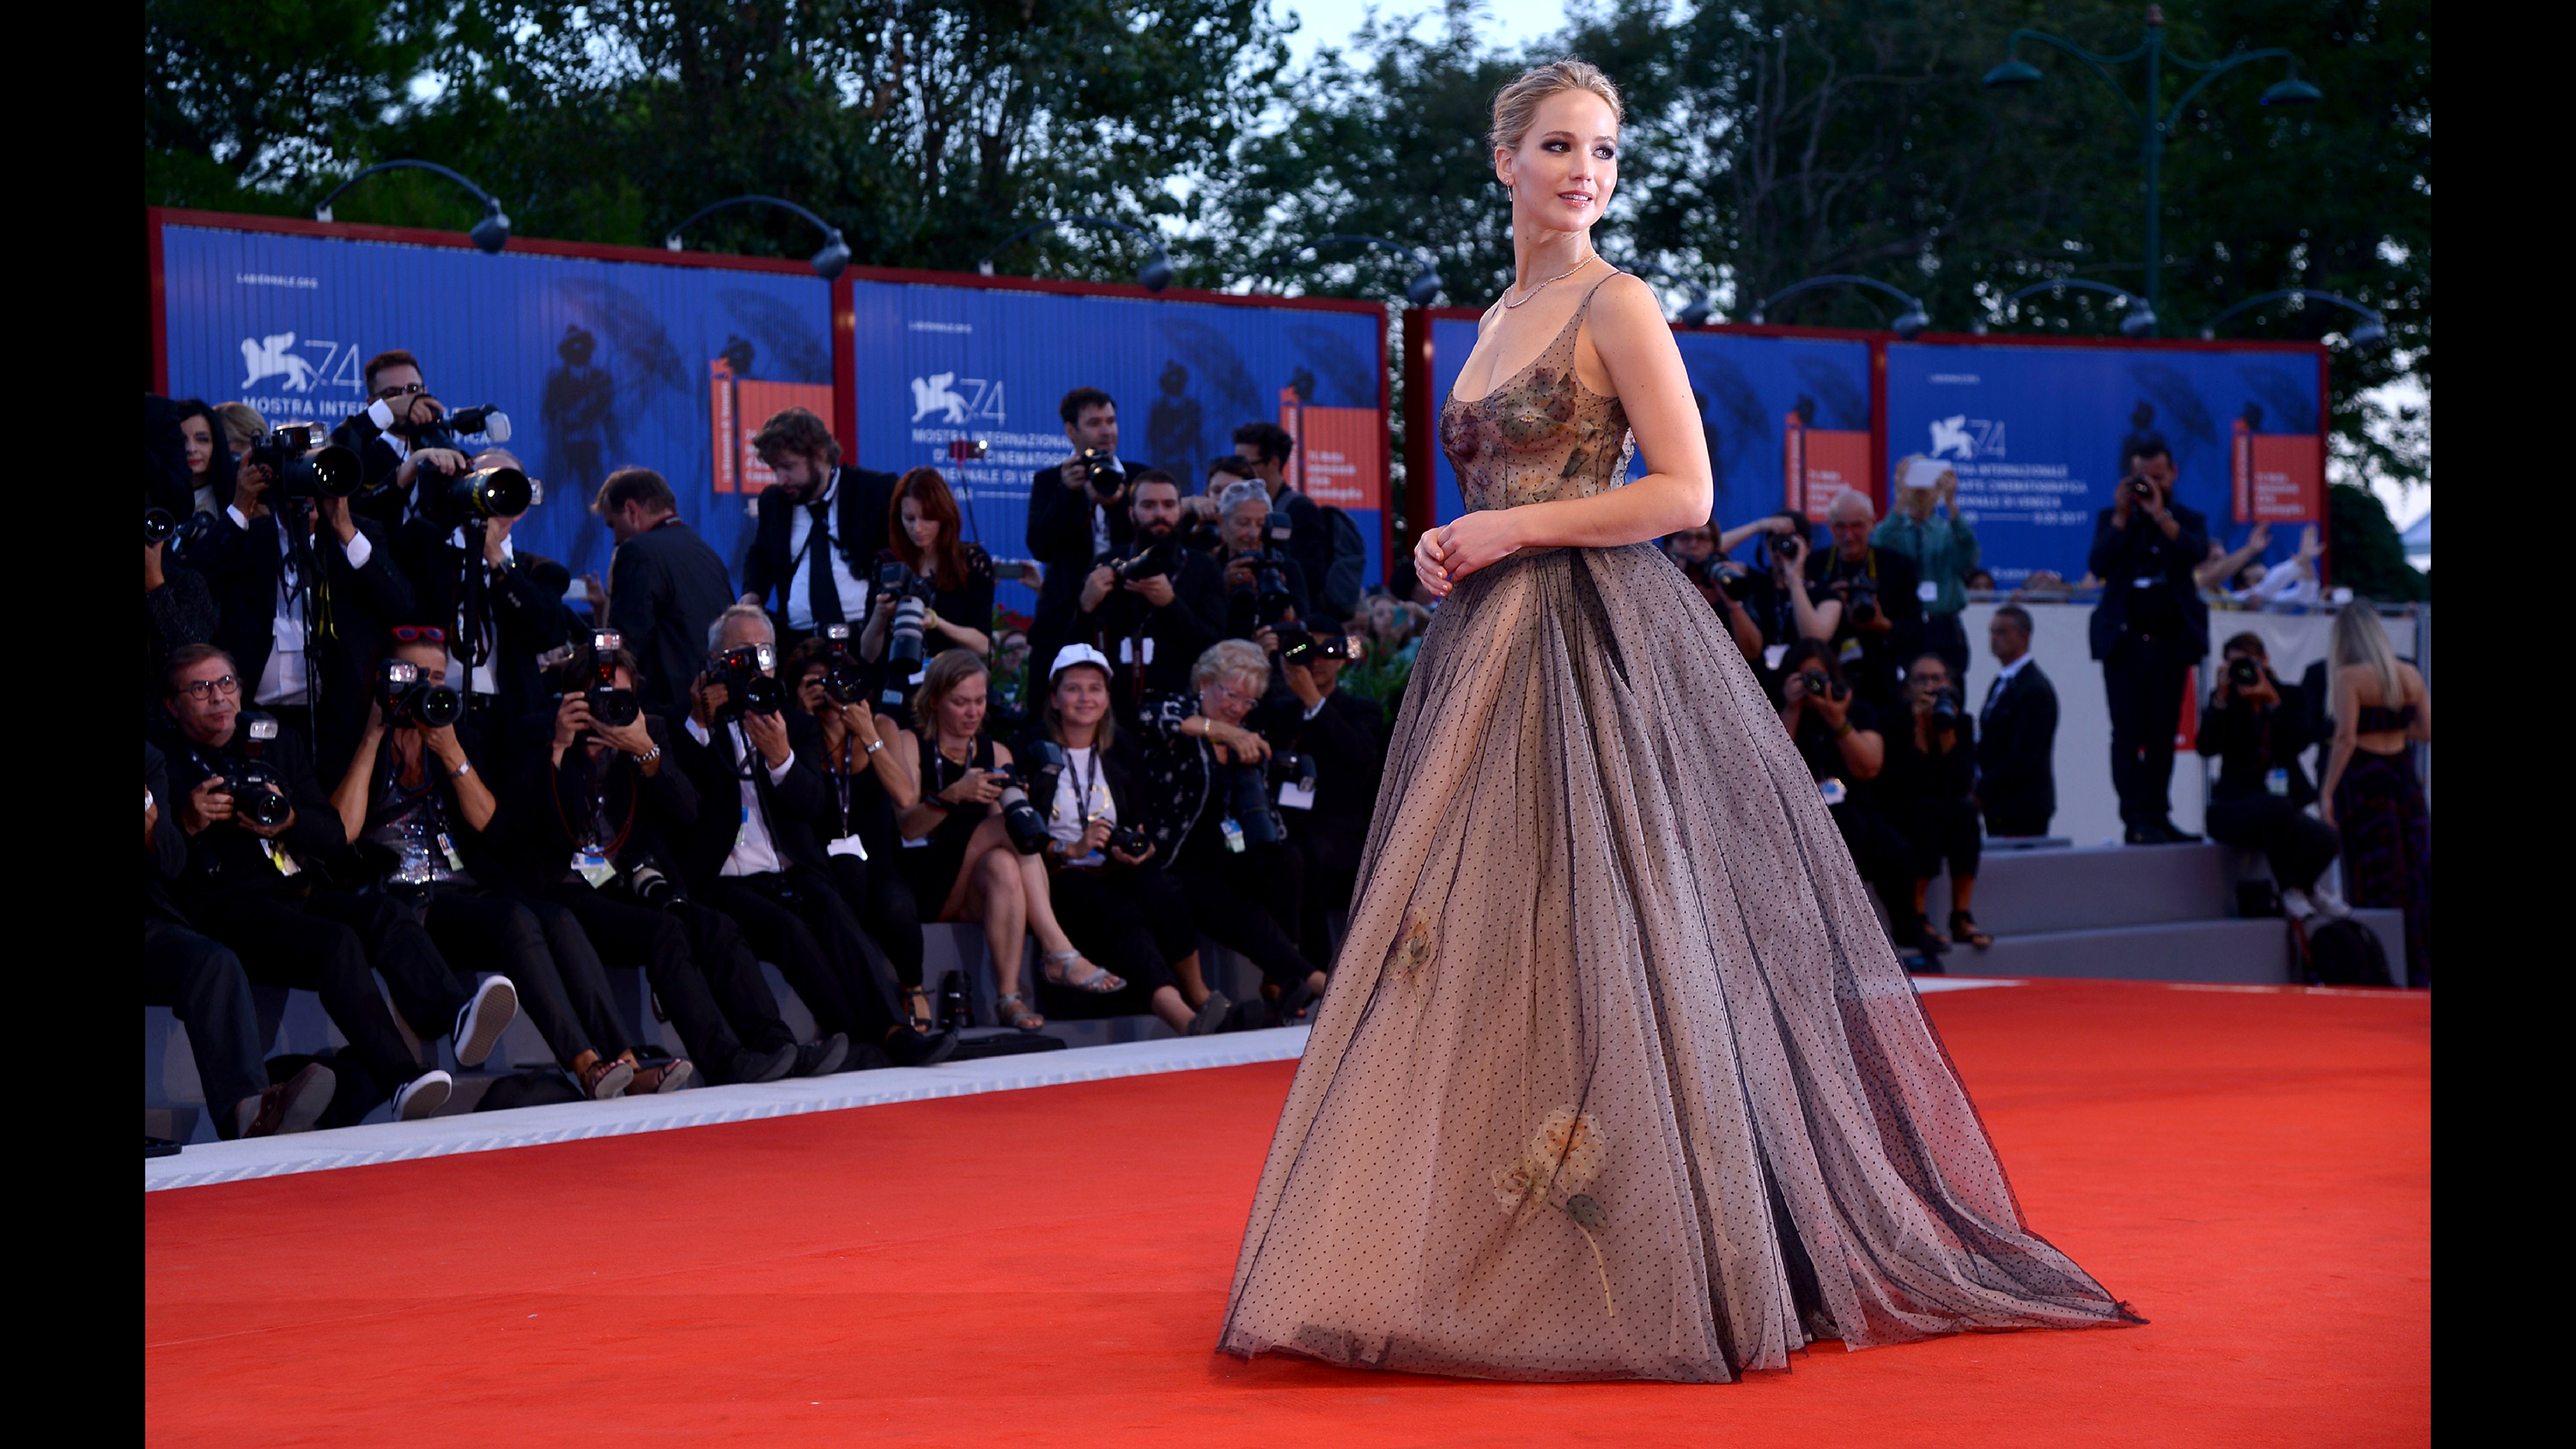 dbe9be96dc2 Venice 2017: Hottest looks from the red carpet - CNN Style